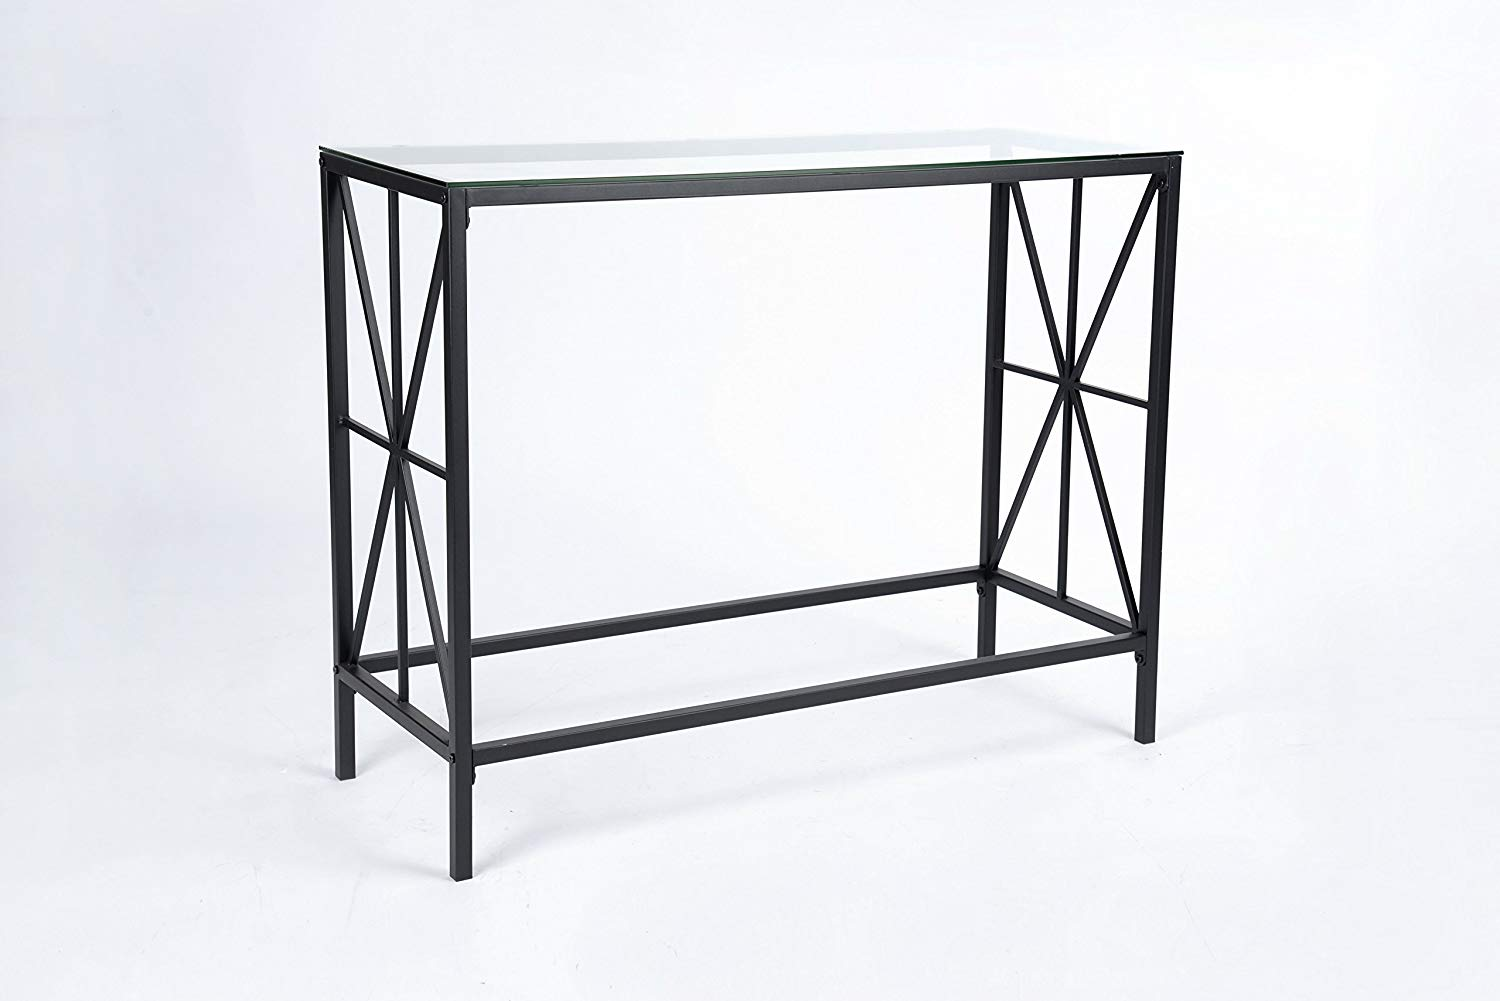 black metal frame clear tempered glass design chrome accent console sofa table with shelf kitchen dining crystal drawer knobs wood coffee long slim round counter height plastic